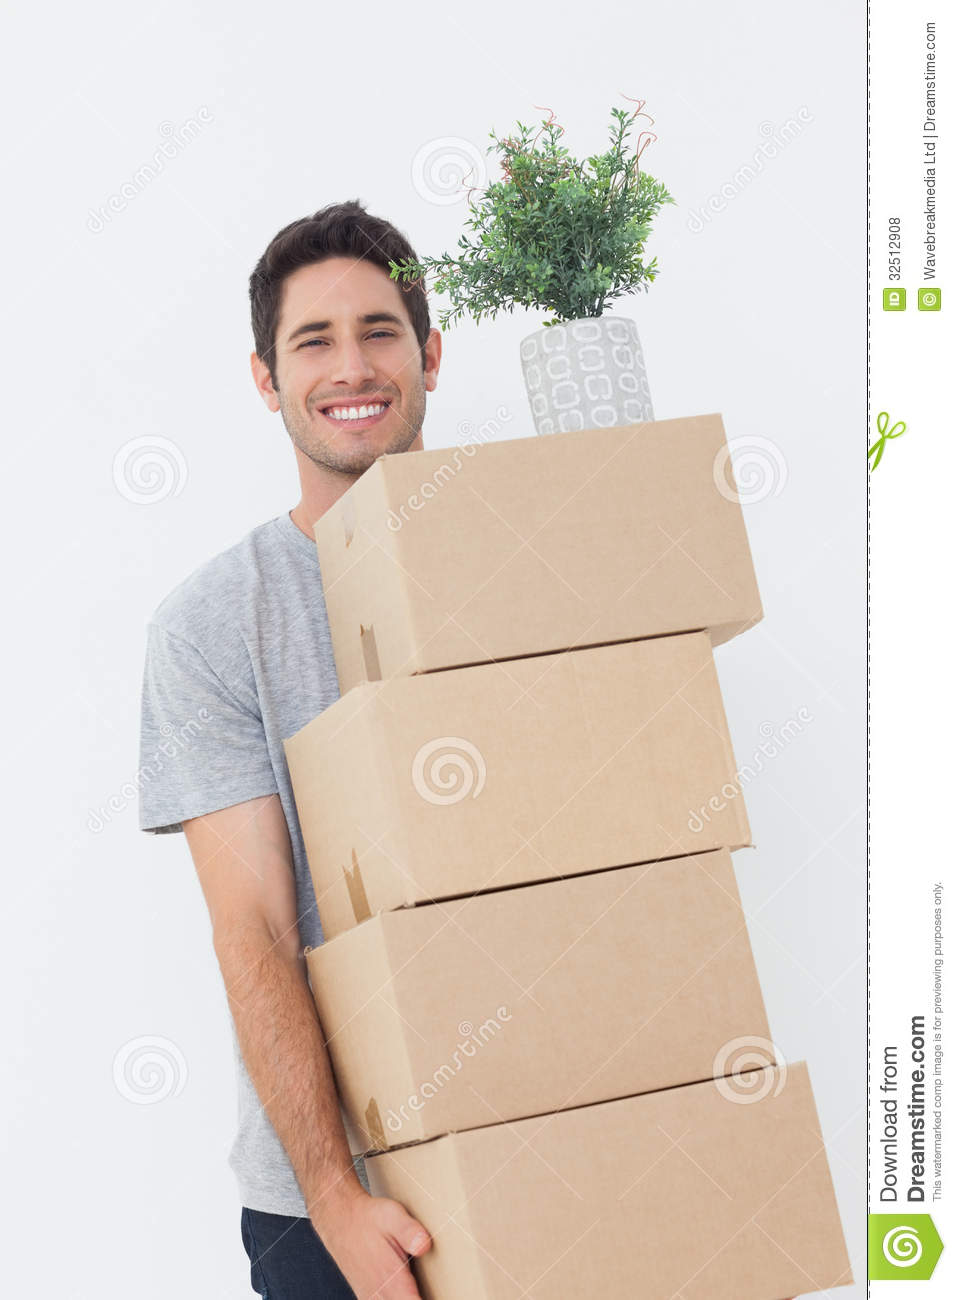 Man Carrying Boxes Because He Is Moving Royalty Free Stock